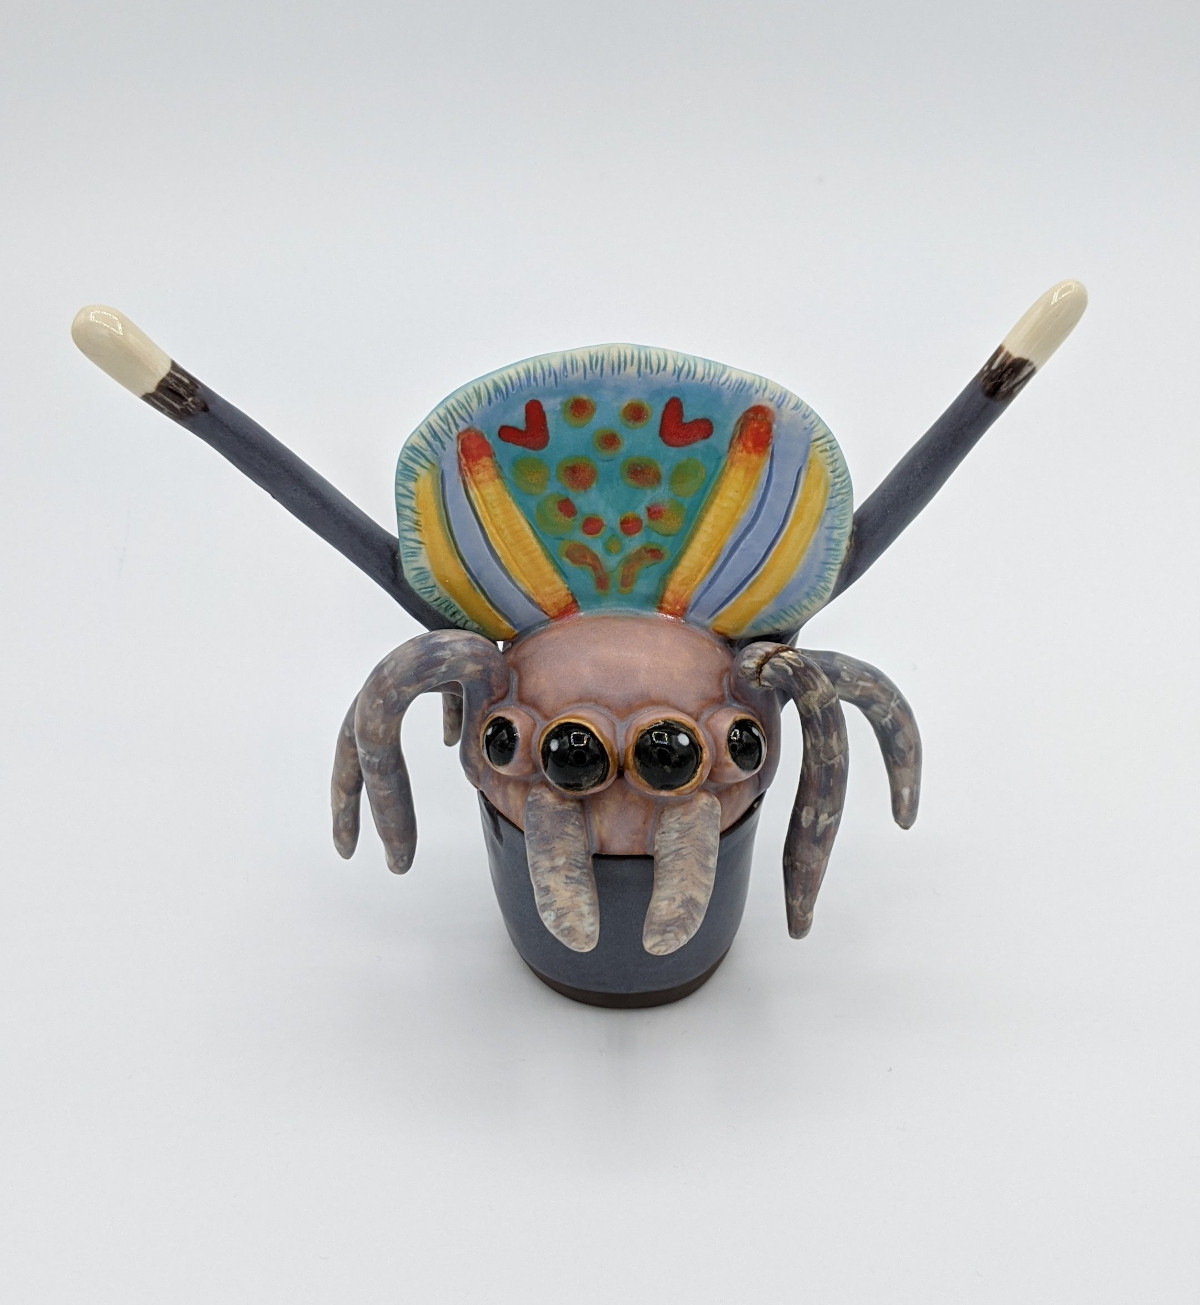 Pottery of a spider with brown head and a colourful body